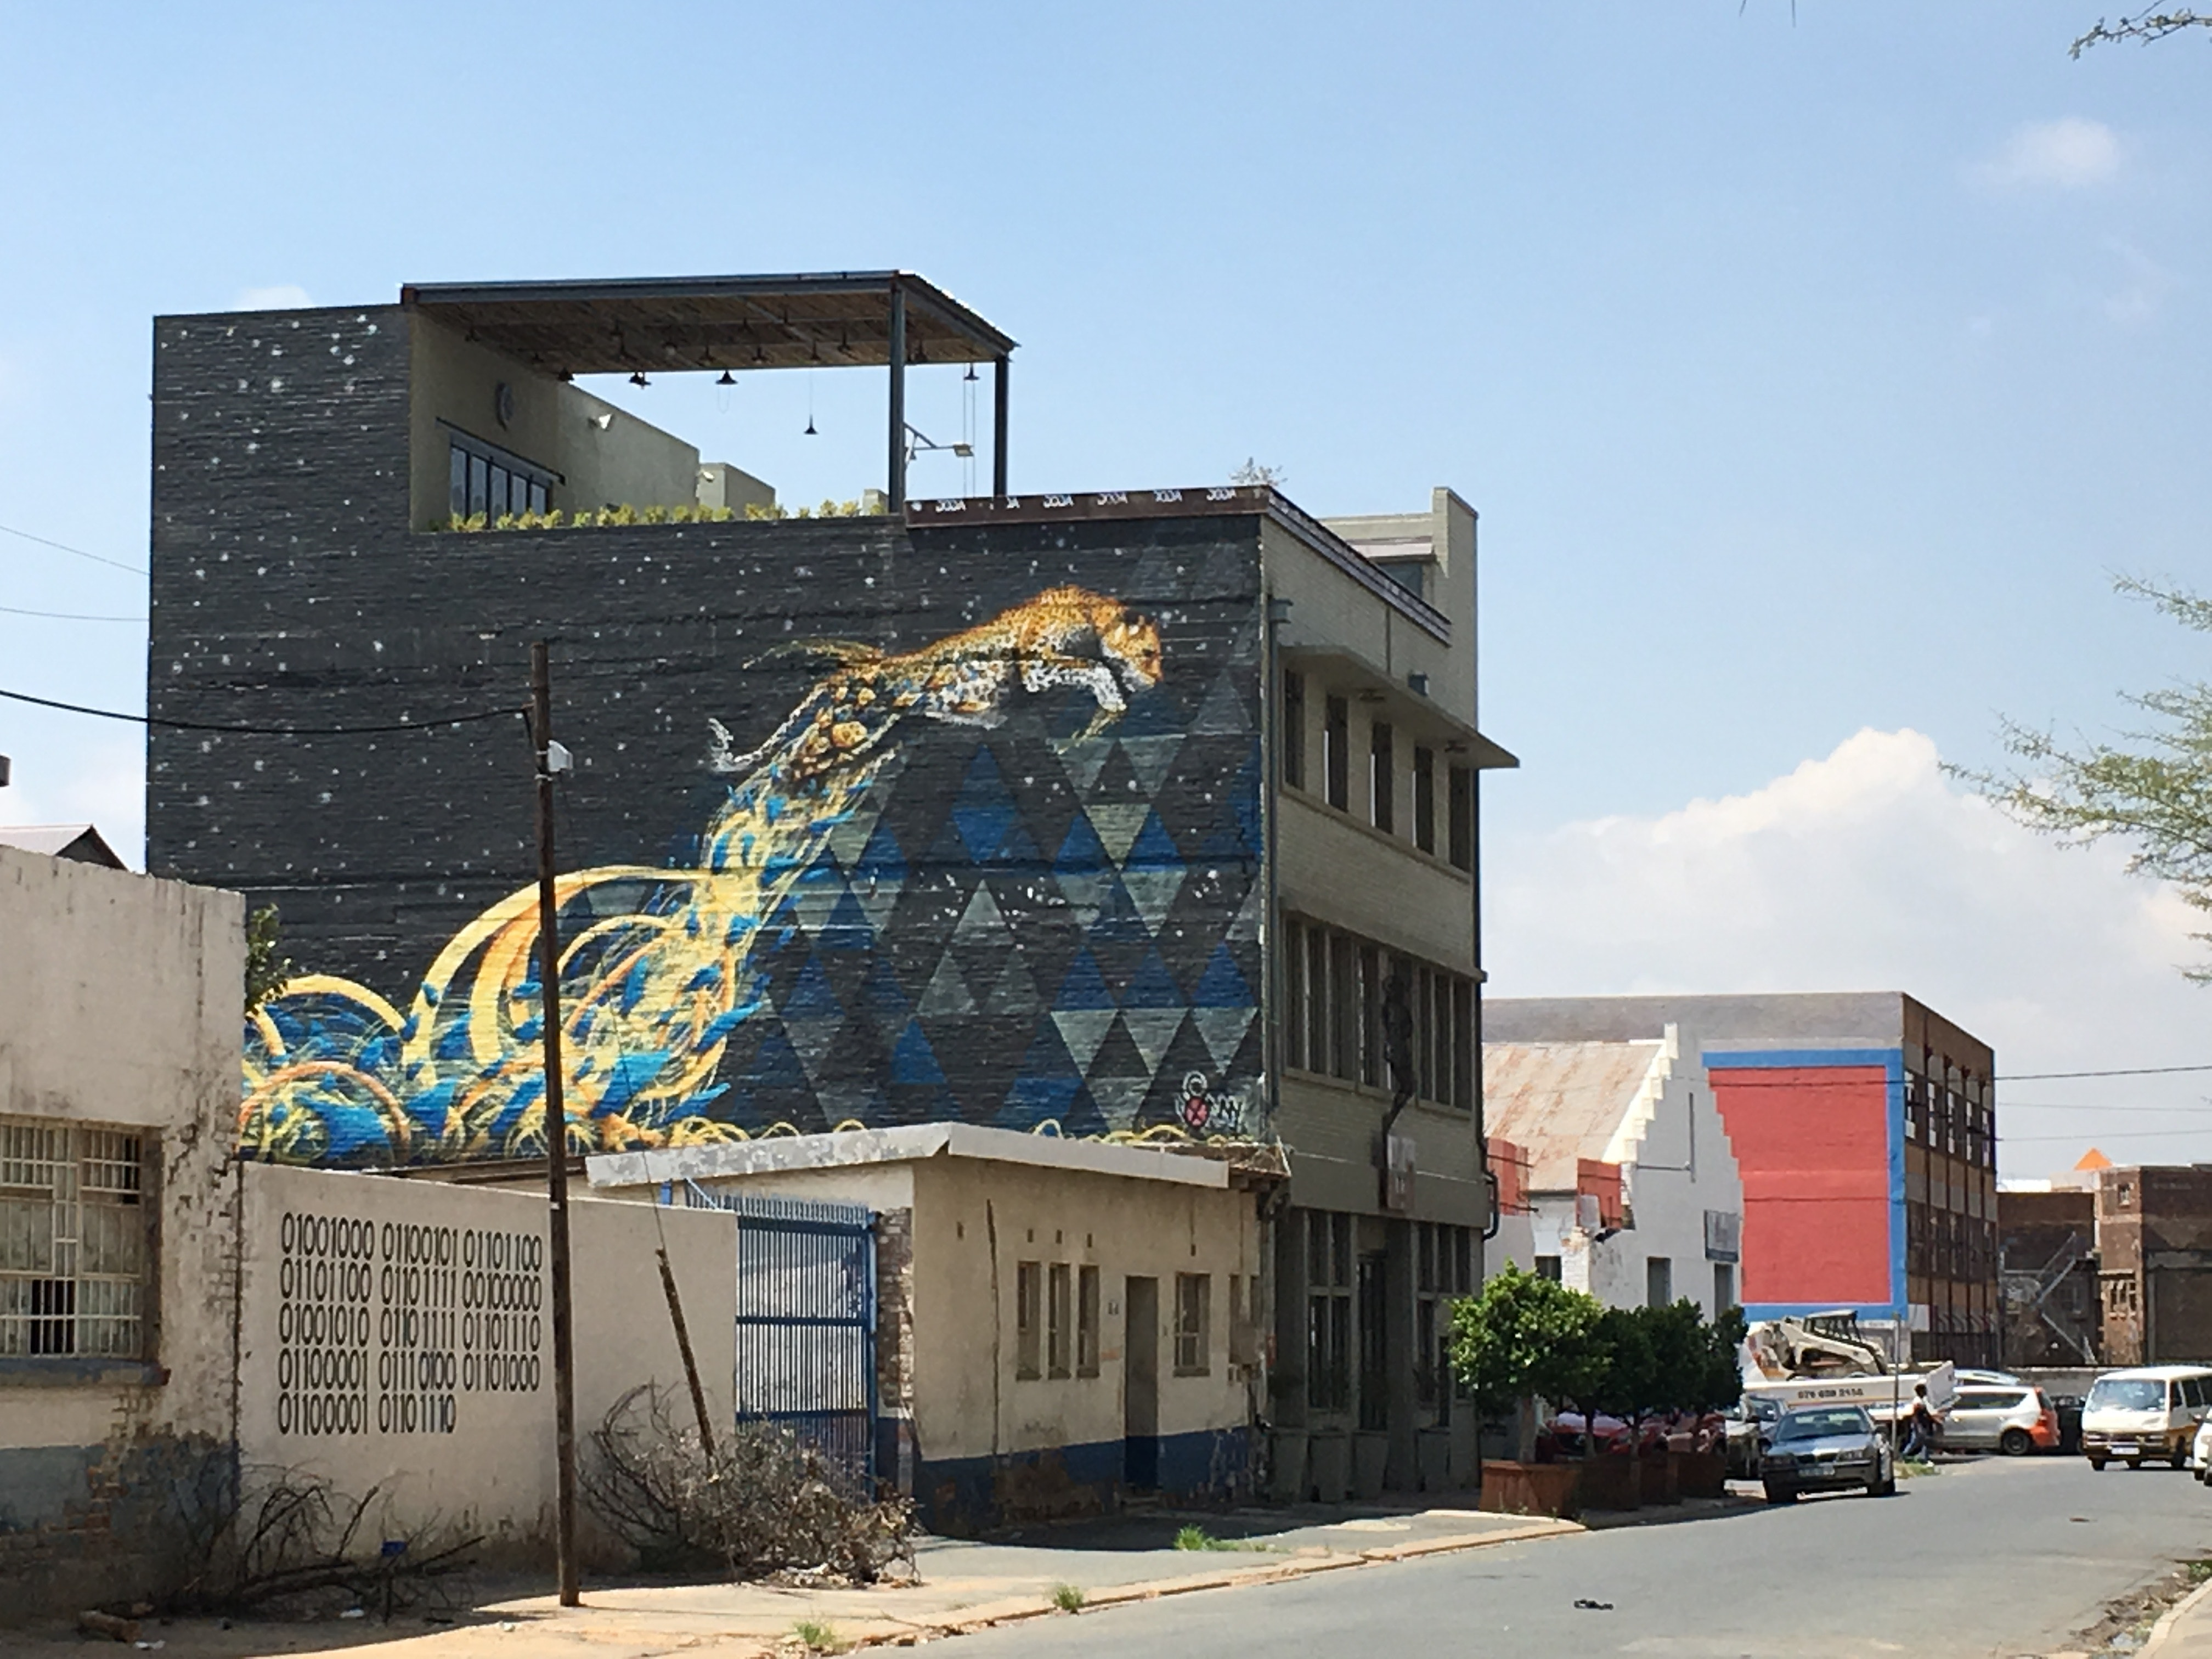 Graffiti is an eye-catching way to create lively spaces in cities